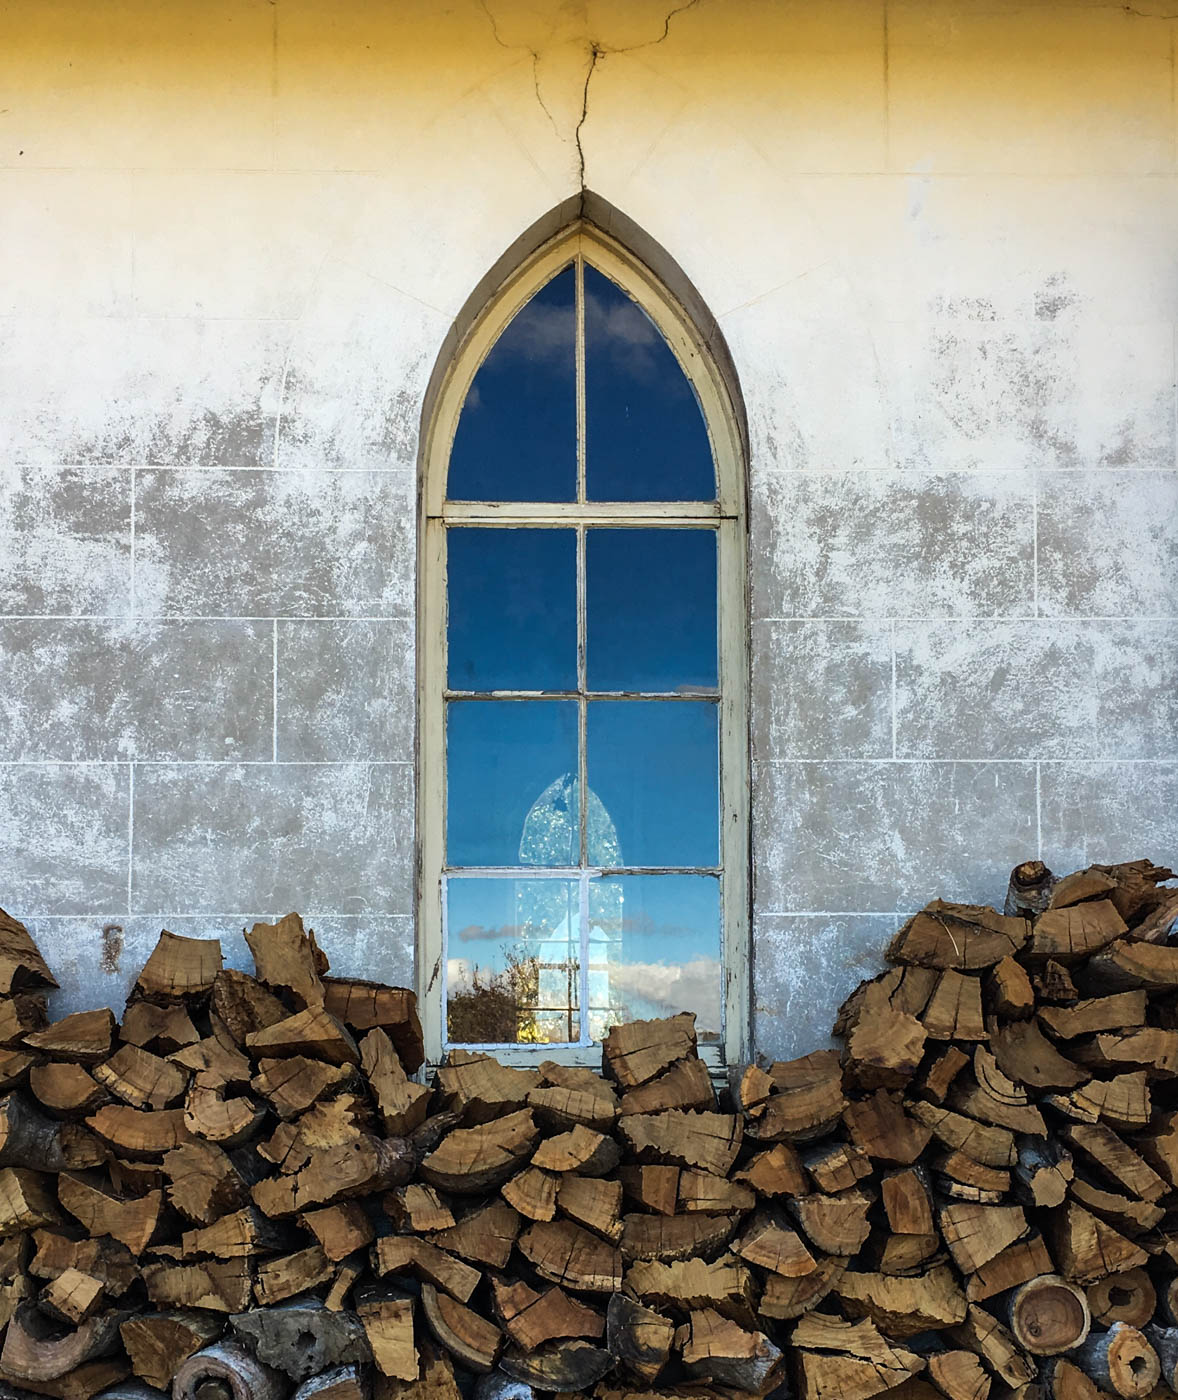 The convent and woodpile